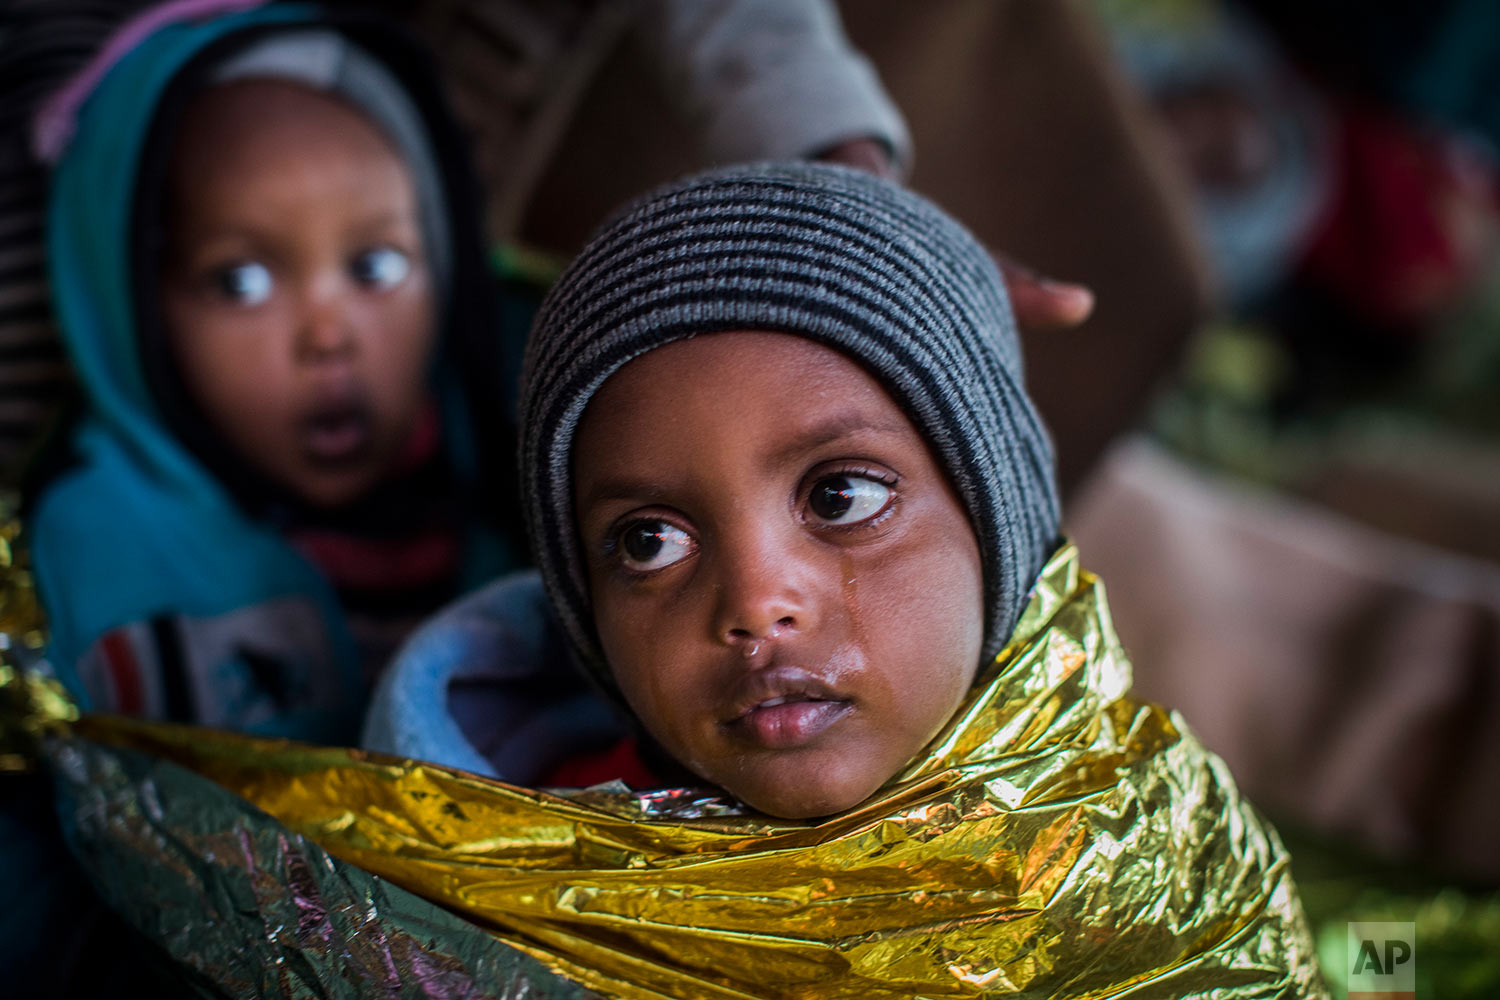 In this Friday, Jan. 19, 2018 photo children from Eritrea rest on board the Spanish NGO Proactiva Open Arms rescue ship as the vessel heads to the Italian port of Pozzallo, in Sicily. (AP Photo/Santi Palacios)